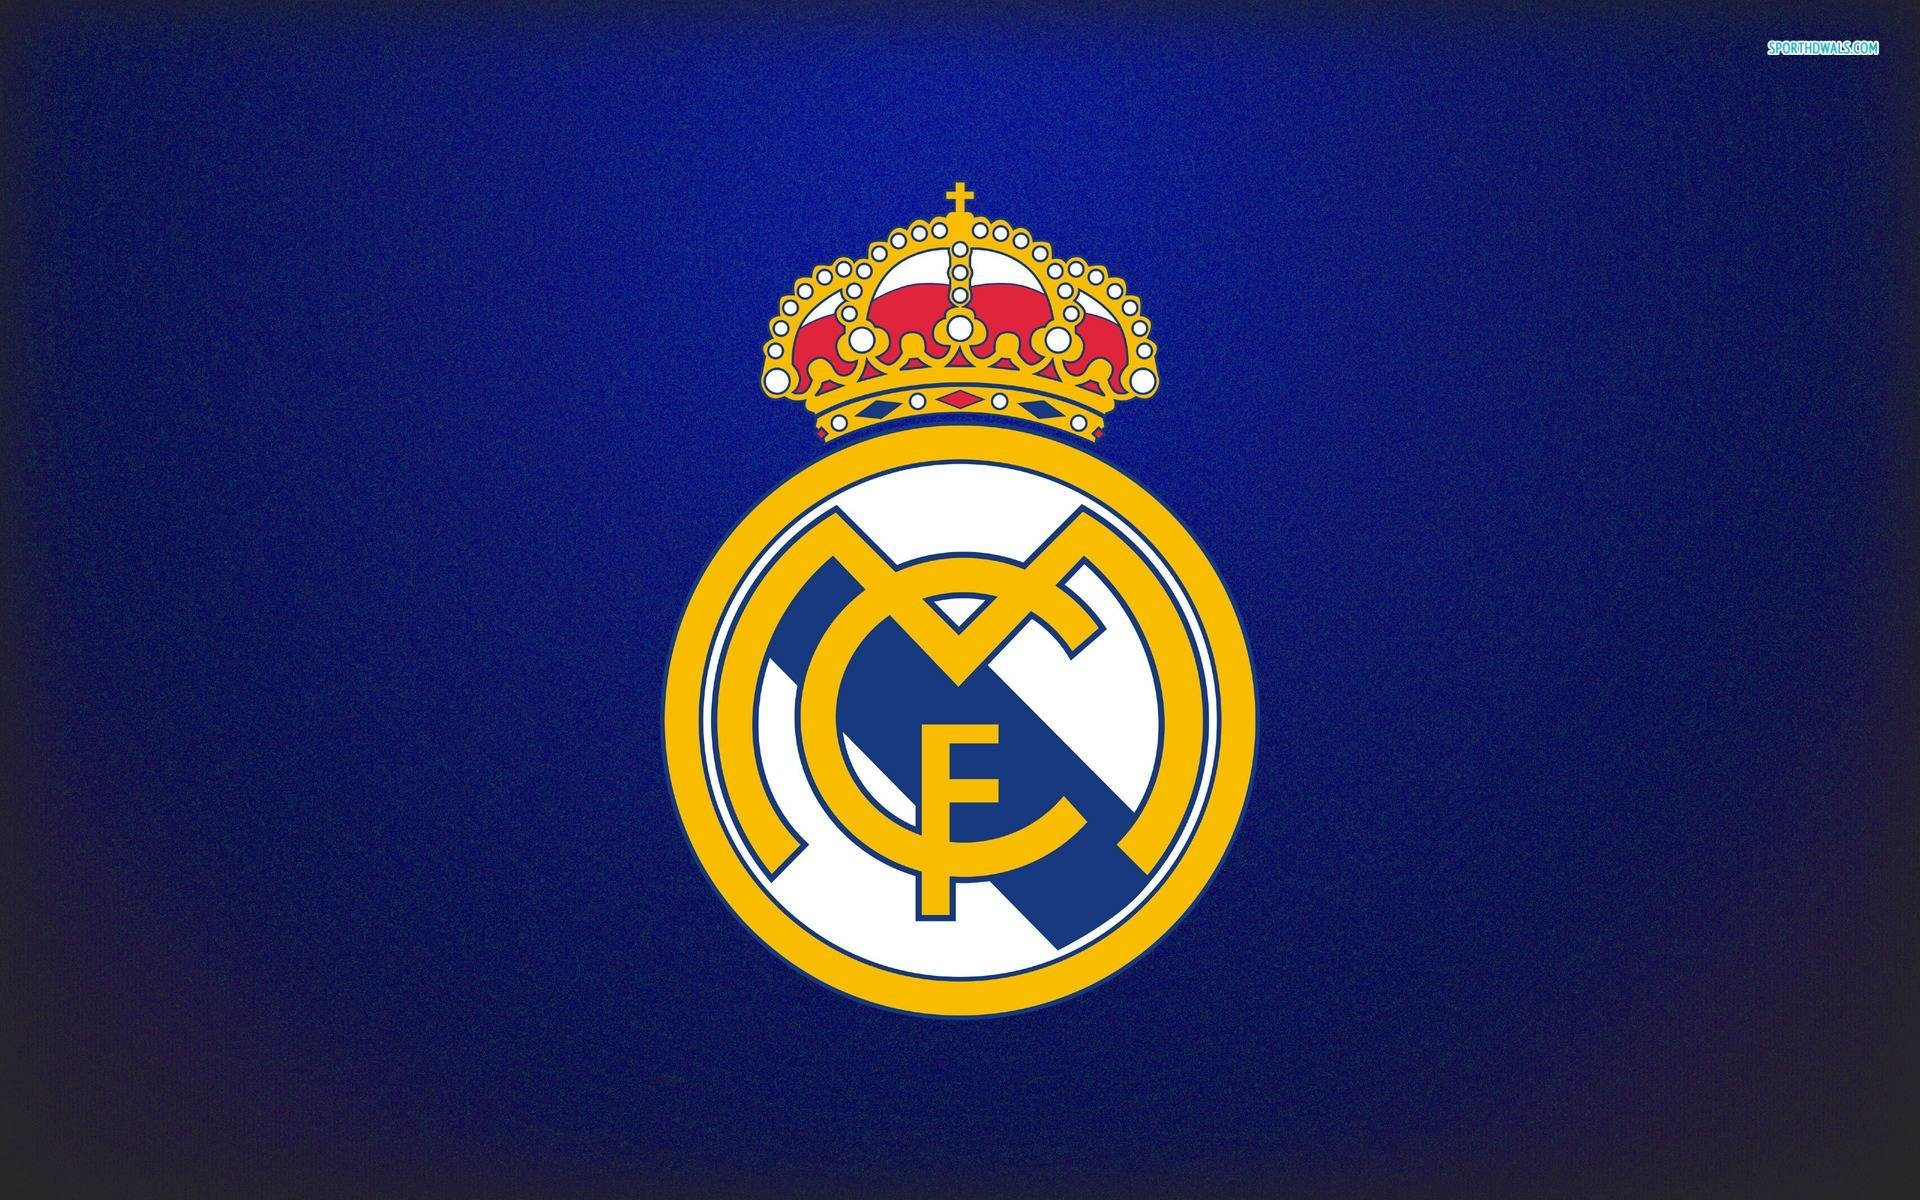 Wallpaper real madrid for windows xp - 1920x1080 Uefa Champions League Hd Wide Wallpaper For Widescreen Wallpapers Hd Wallpapers Download 1920x1080 Real Madrid